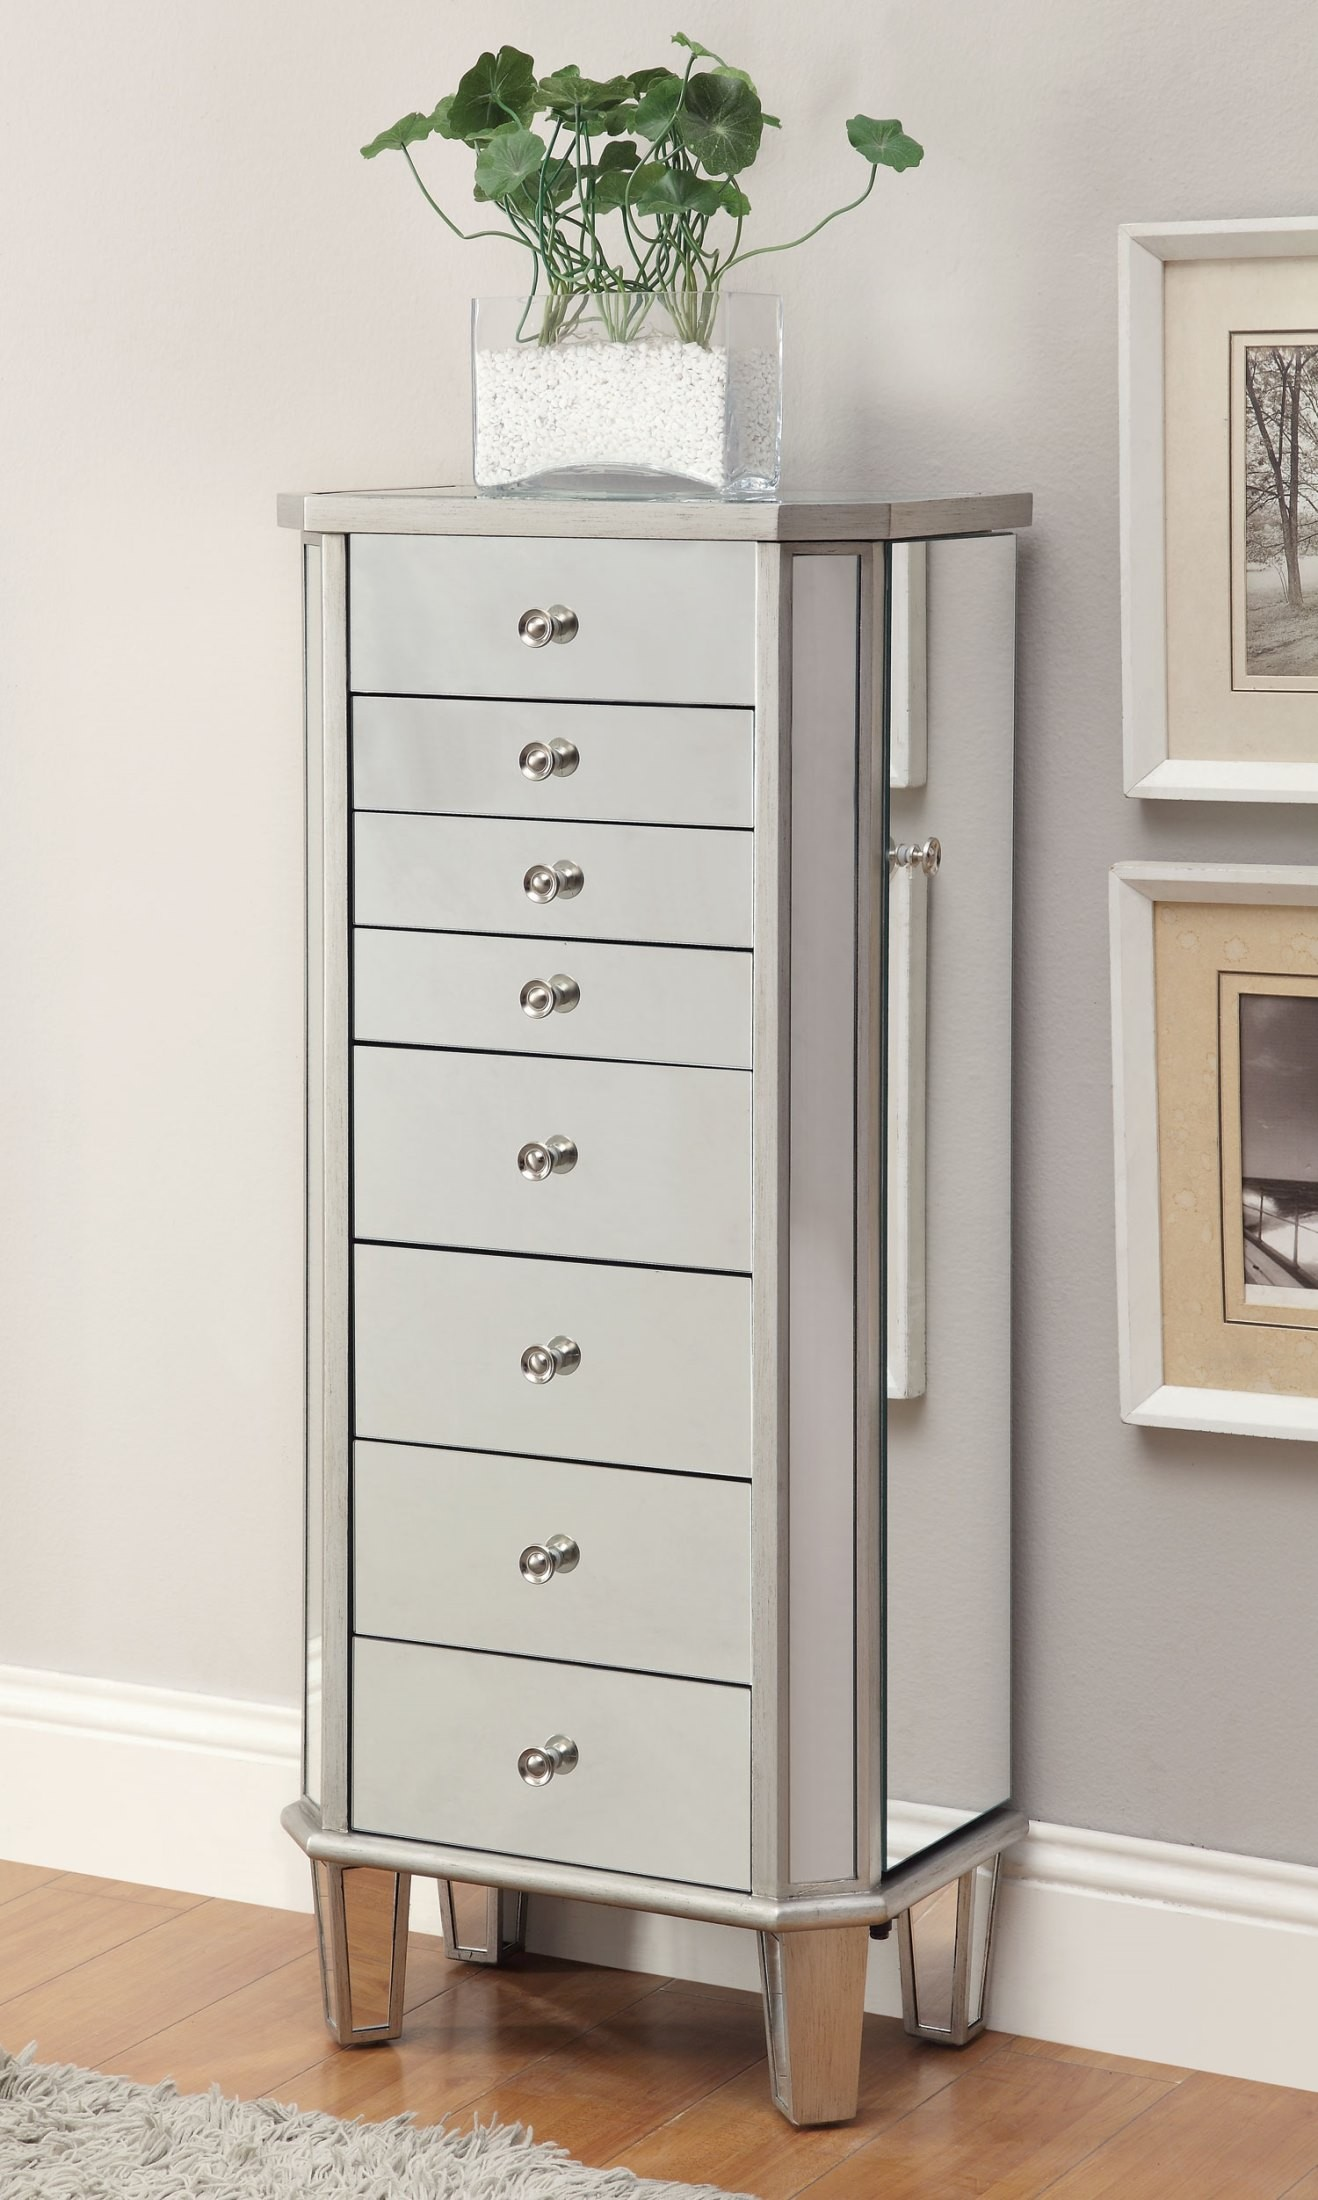 903808 Antique Silver Jewelry Armoire from Coaster (903808 ...